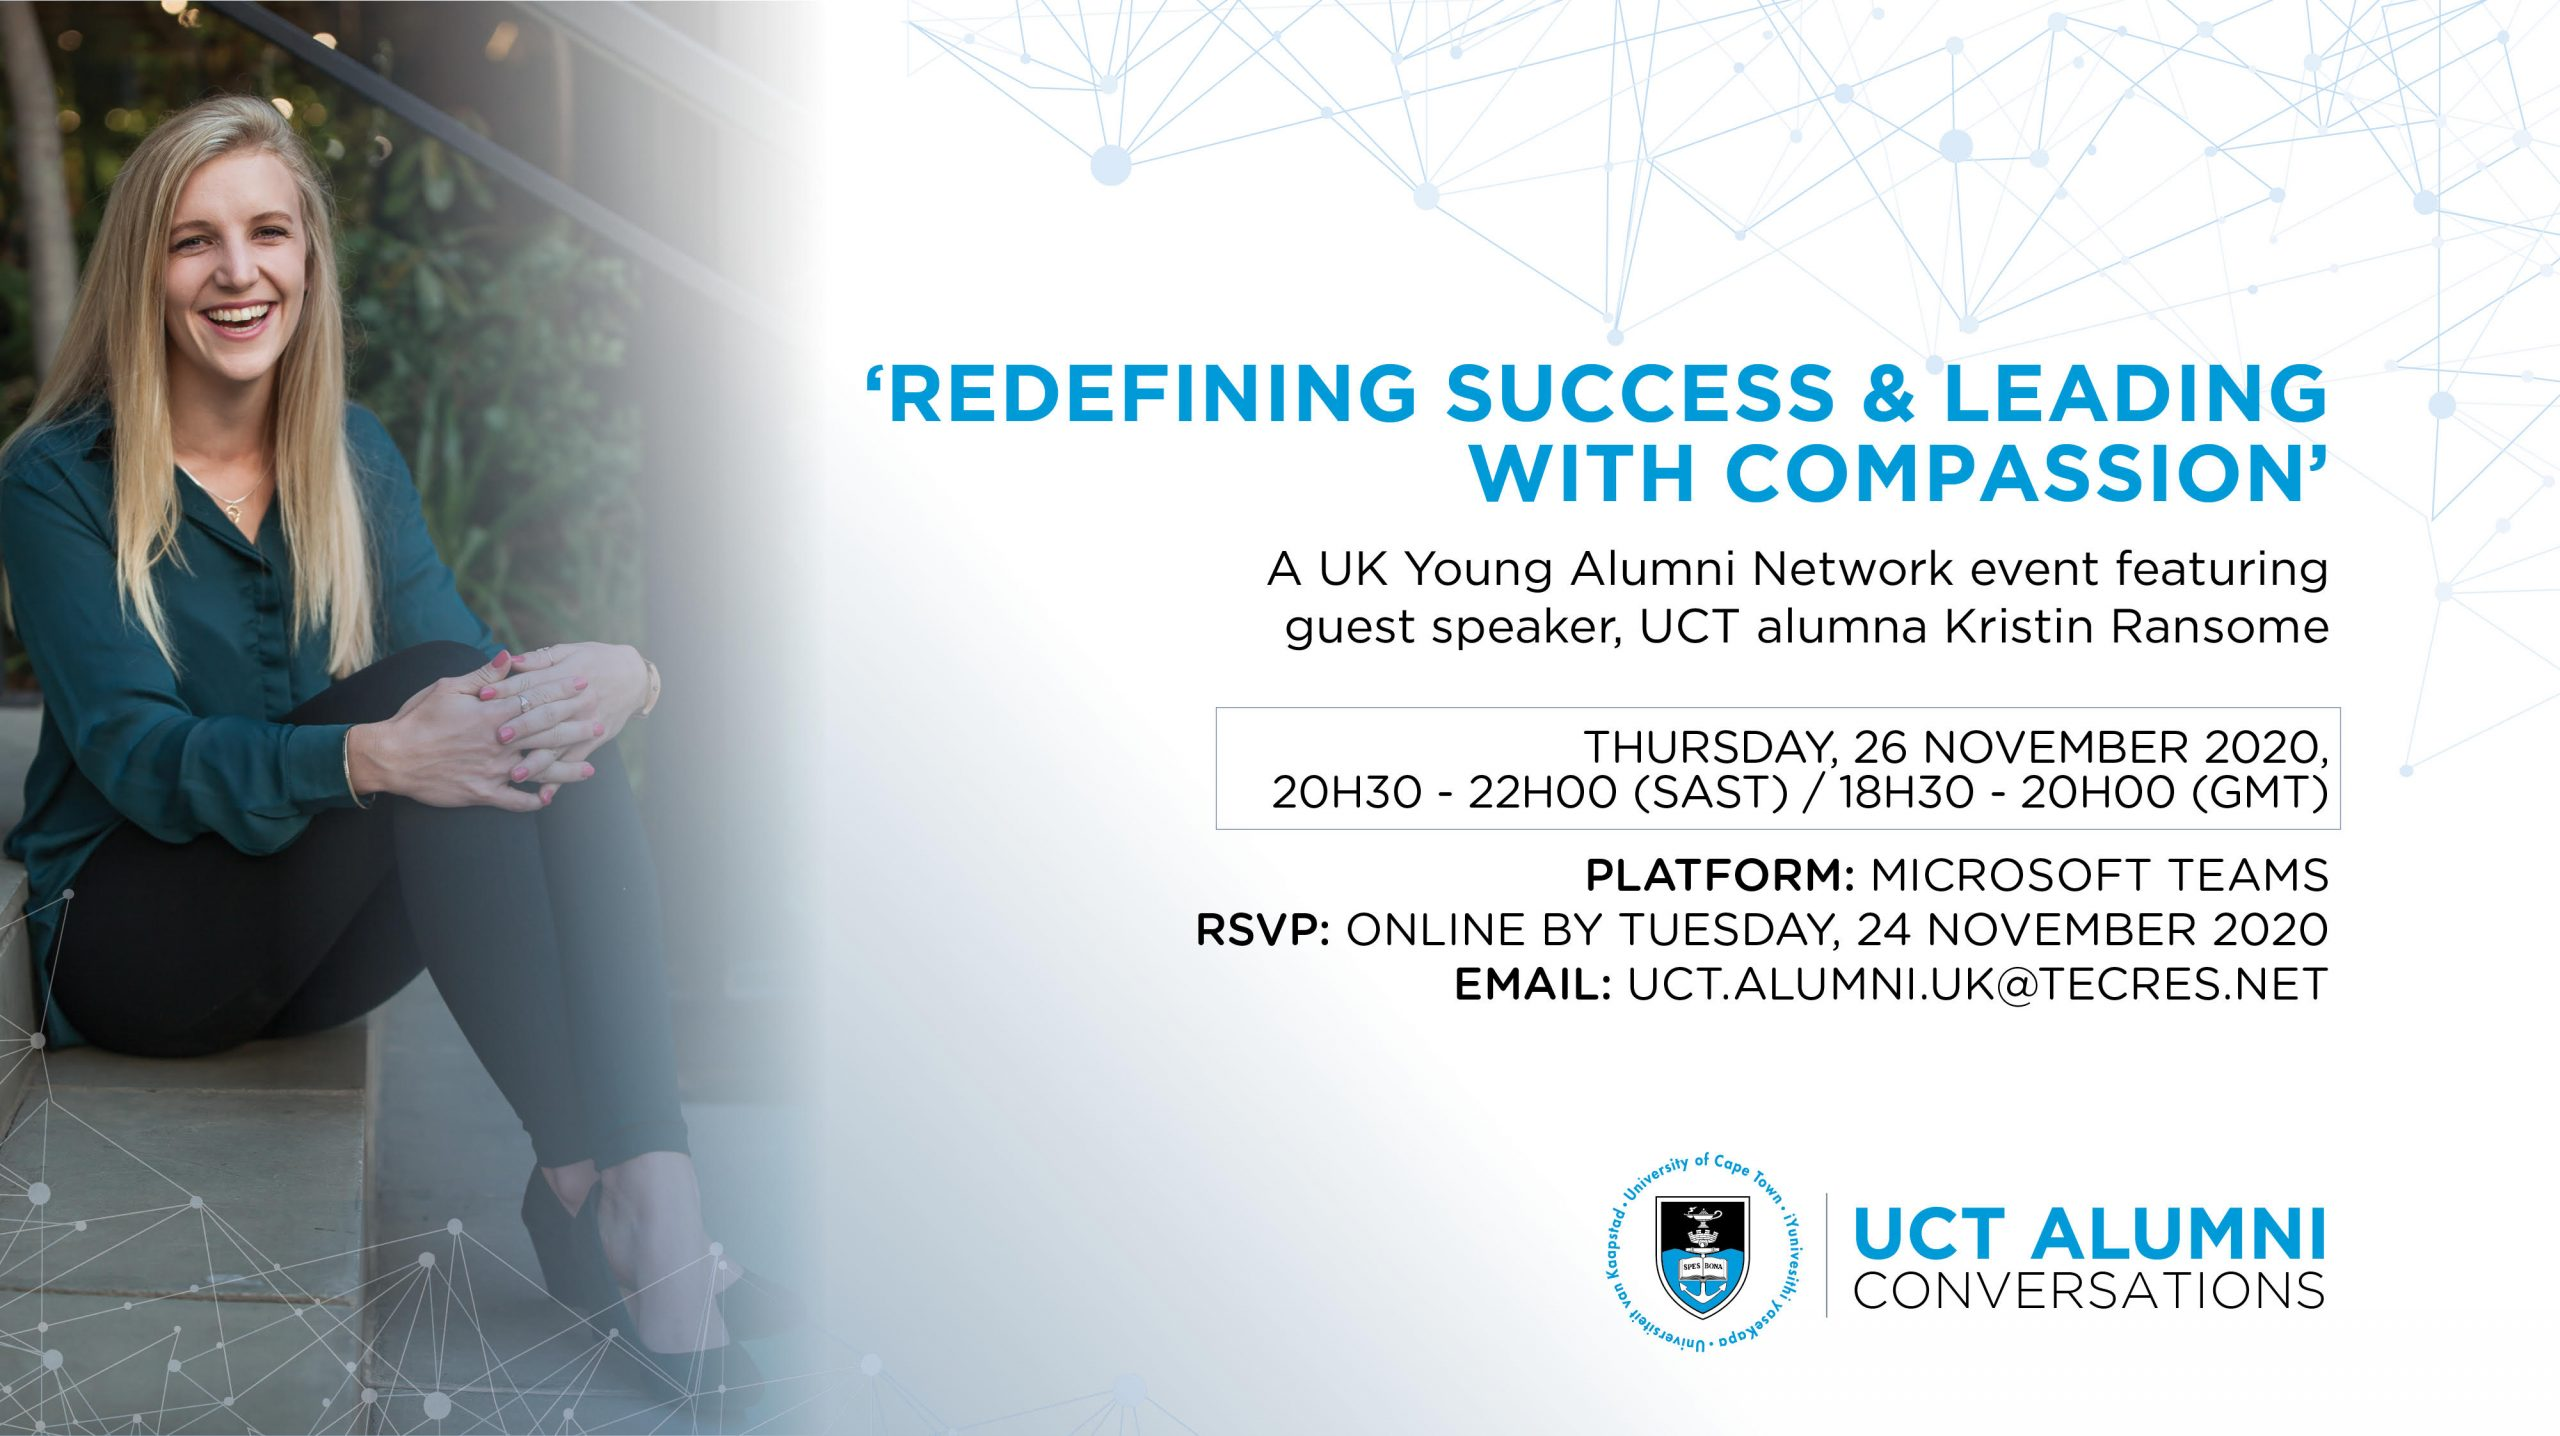 UK Young Alumni Network Event – 'Redefining Success & Leading with Compassion'